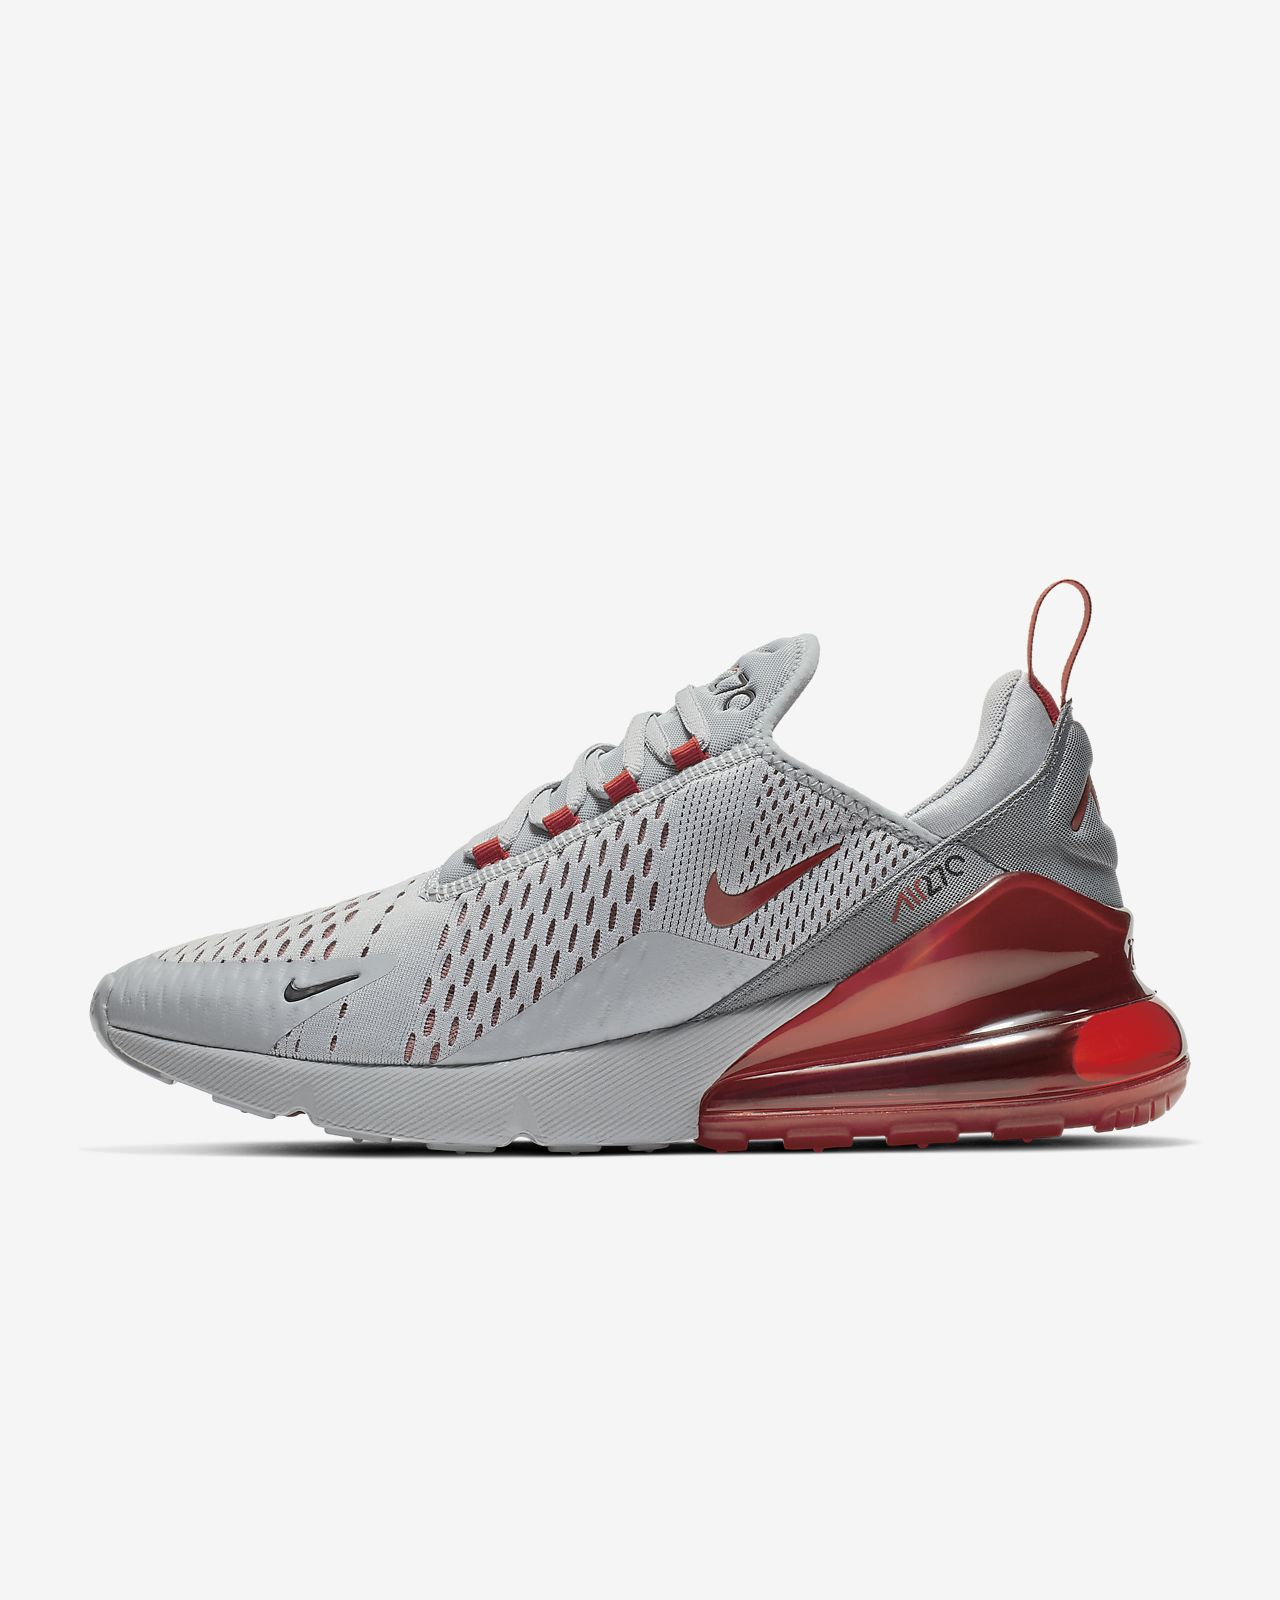 cheaper 2f2e3 8cdc6 Nike Air Max 270